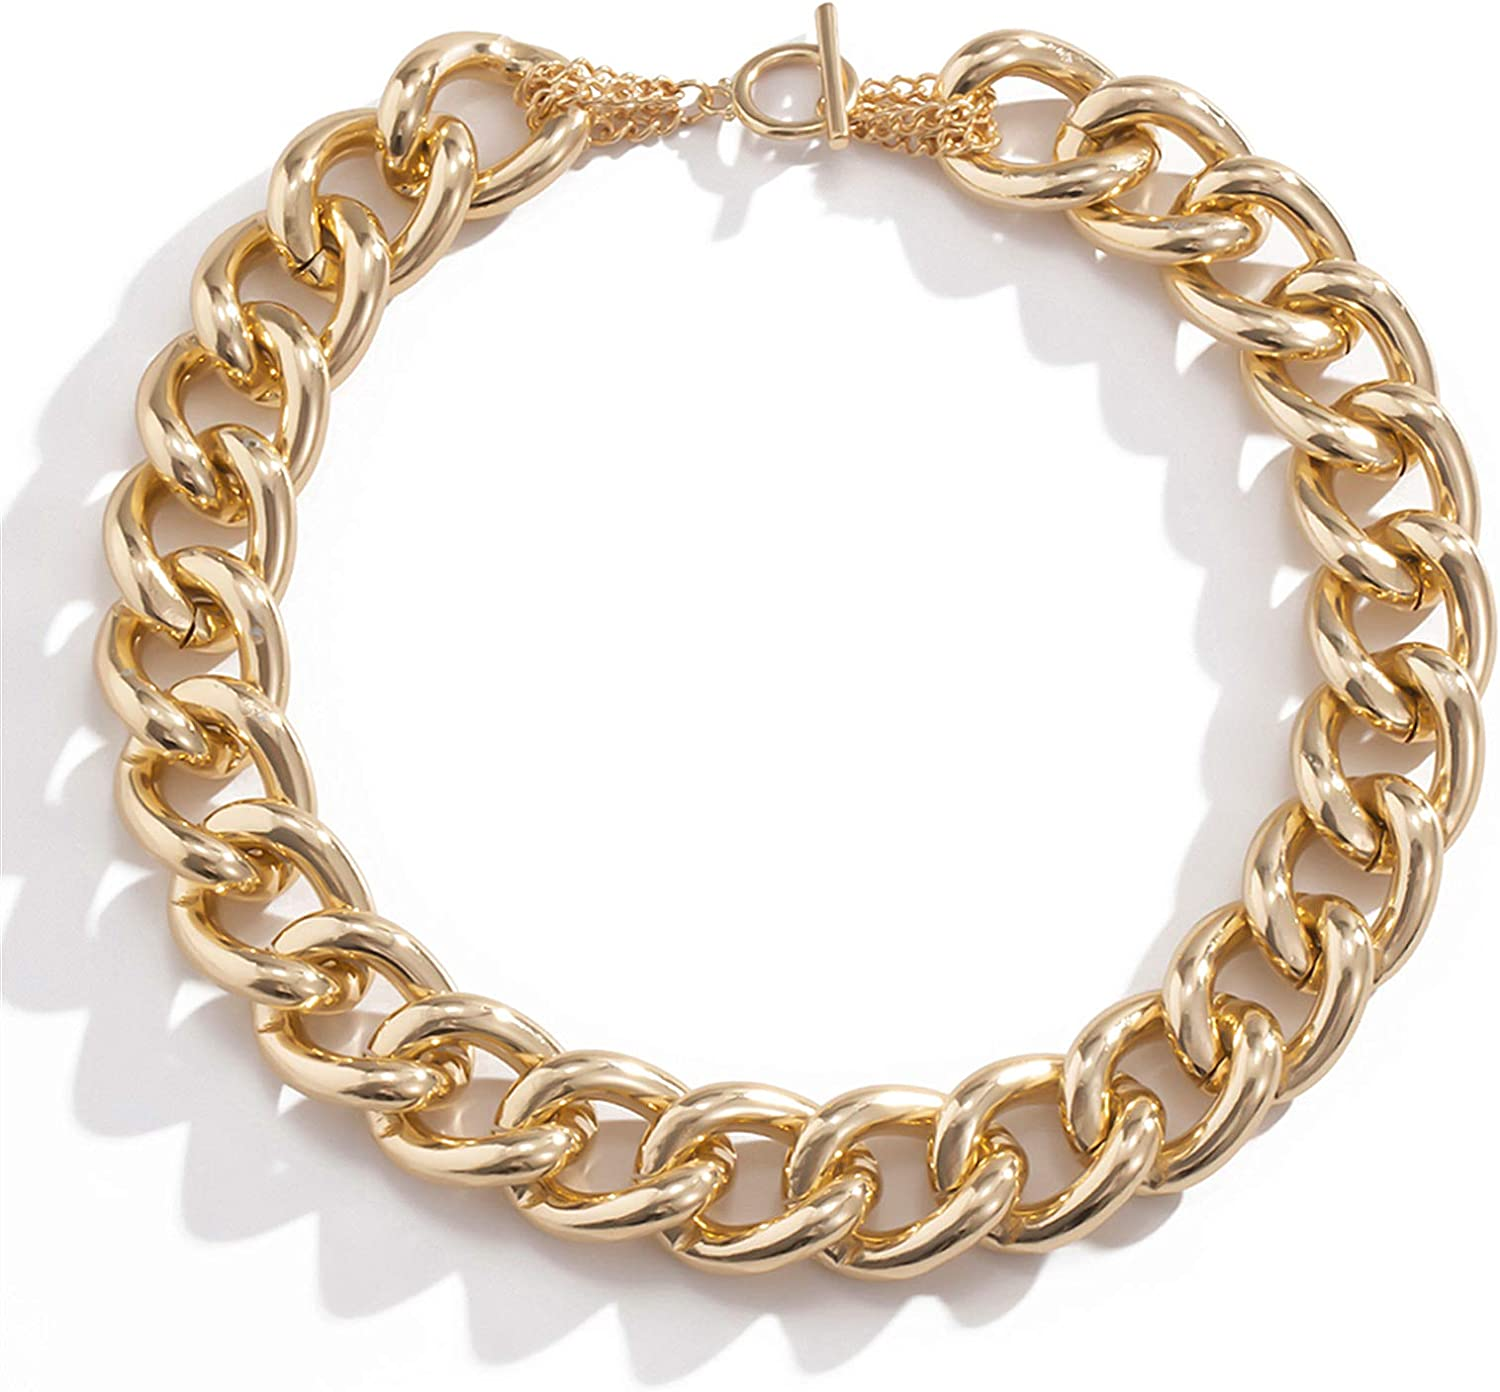 Chunky Chain Choker Industrial Style Gold or Silver Big Curb Chain Link Necklace Goth Punk Stacking Necklace Rock Statement Choker